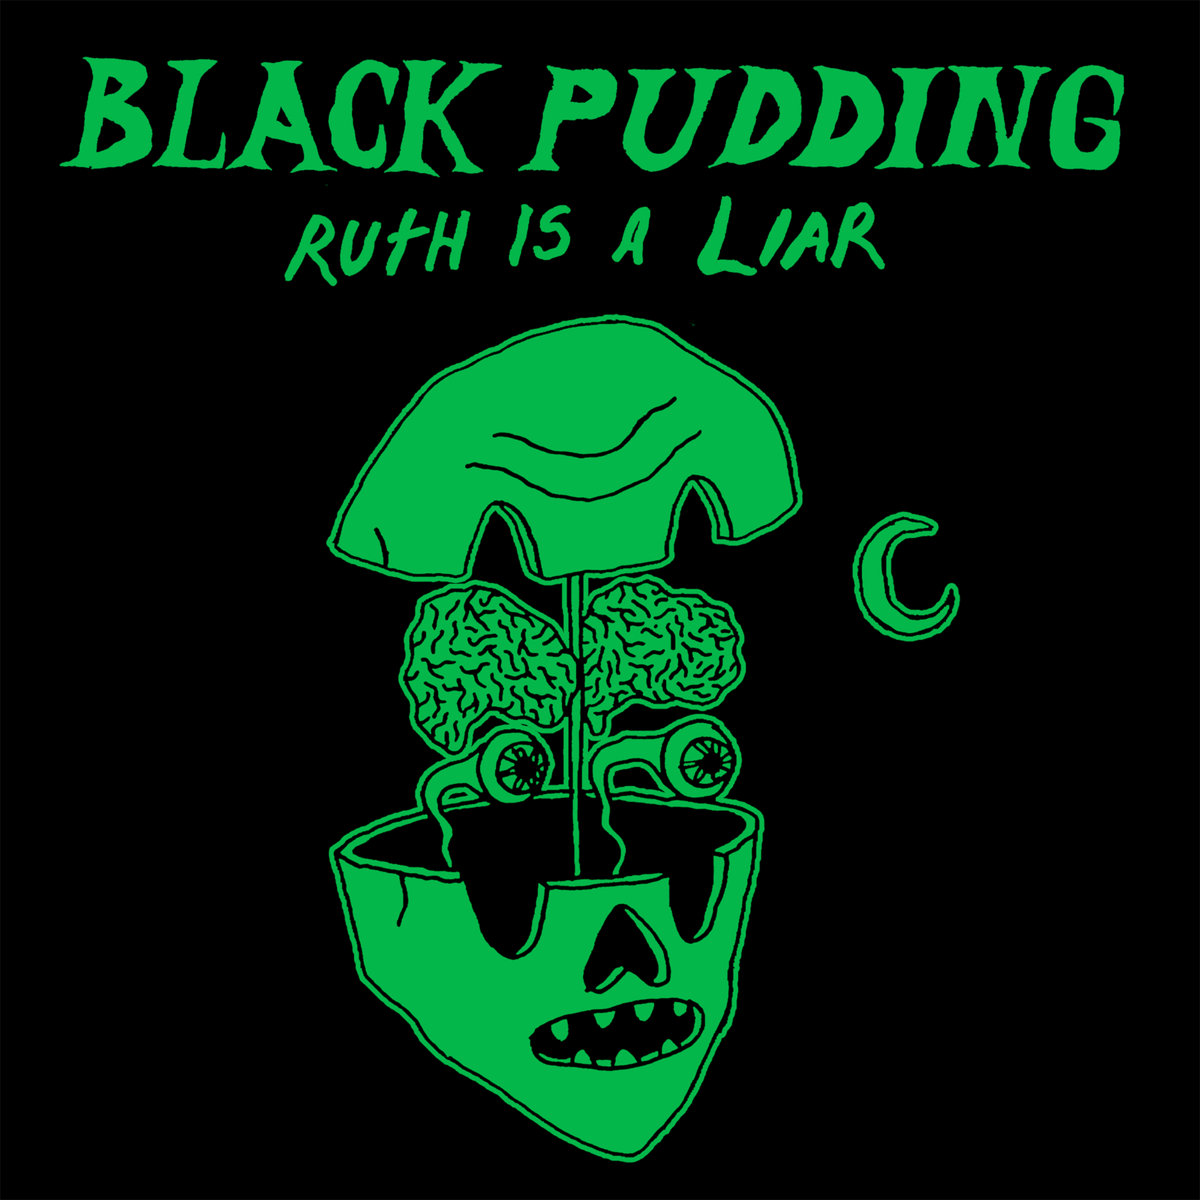 Ruth is a Liar by Black Pudding